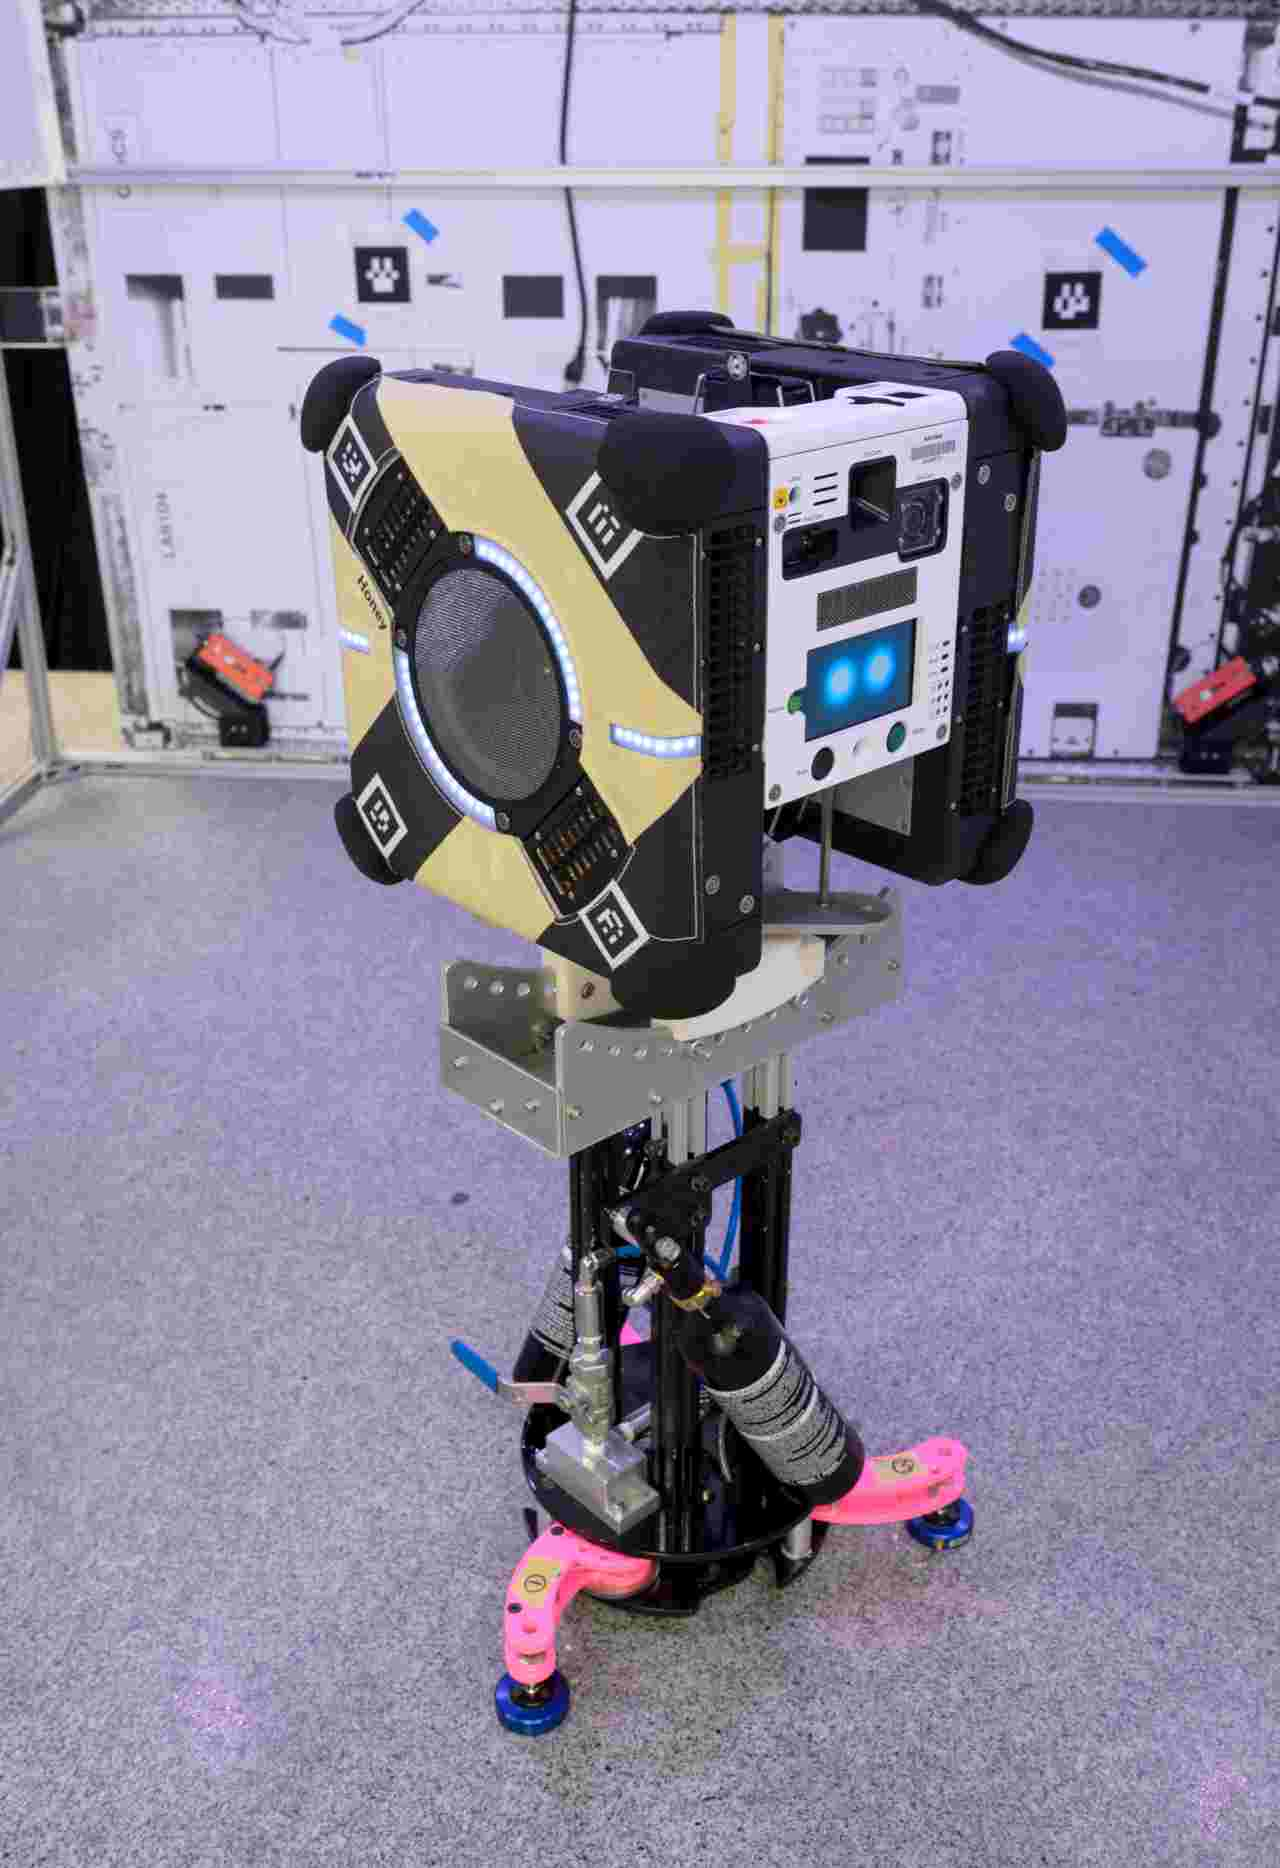 Astrobees: NASA sends a pair of floating robot assistants to the space station